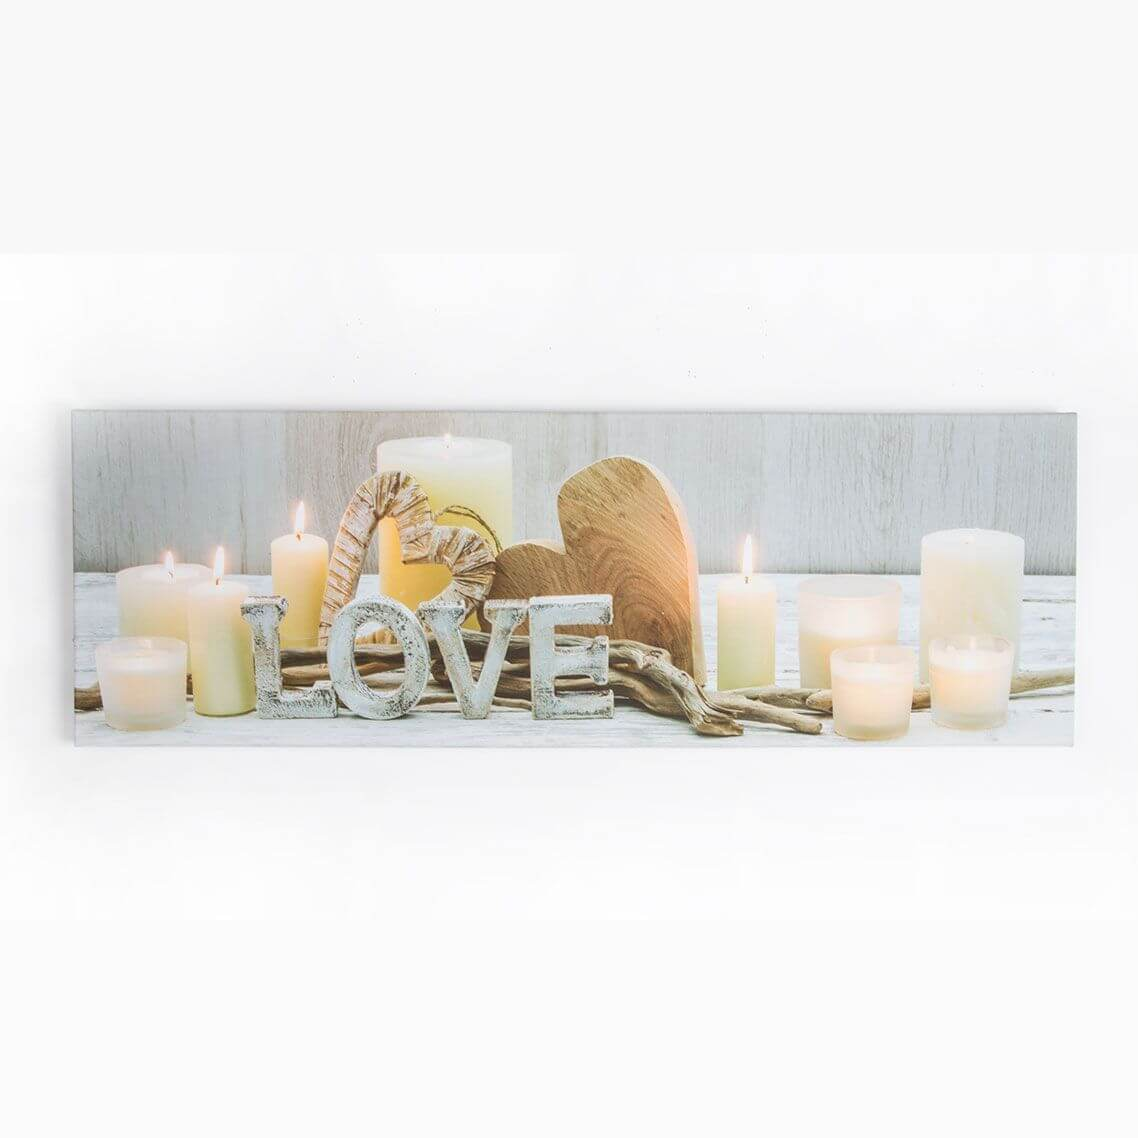 Art For The Home Love Led Light Printed Canvas Wall Art